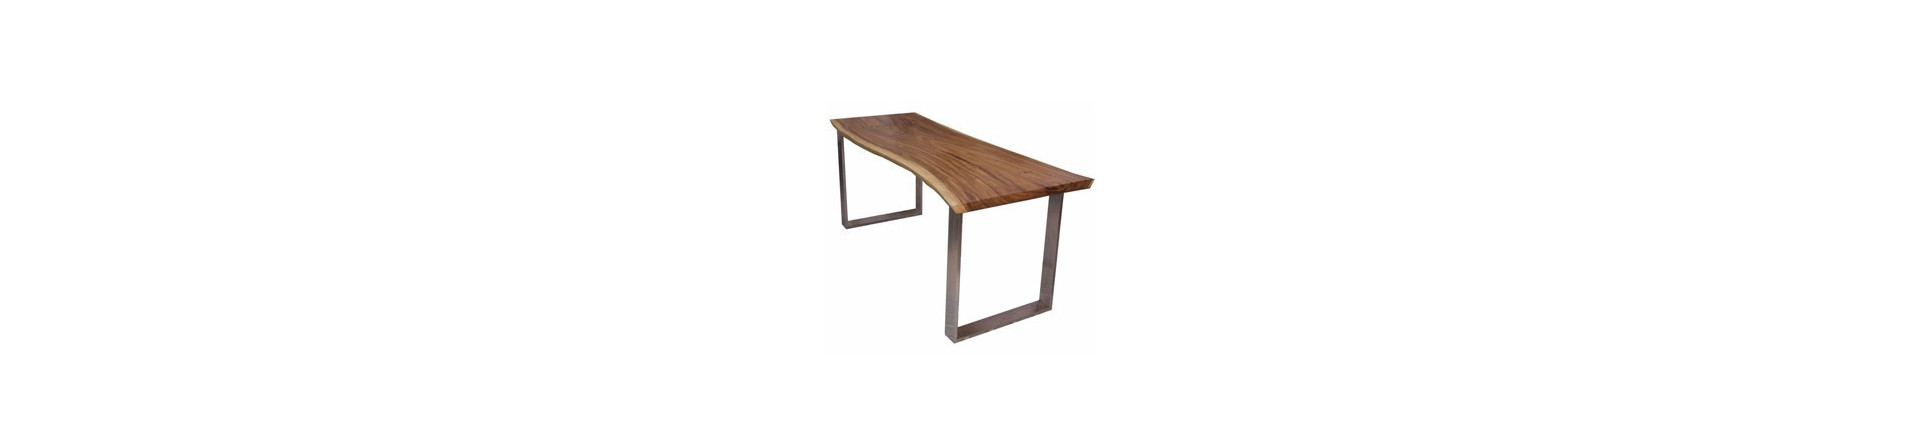 Design tables, made from natural wood, fiberglass, glass and other materials available, Cut to size available for some wood tables